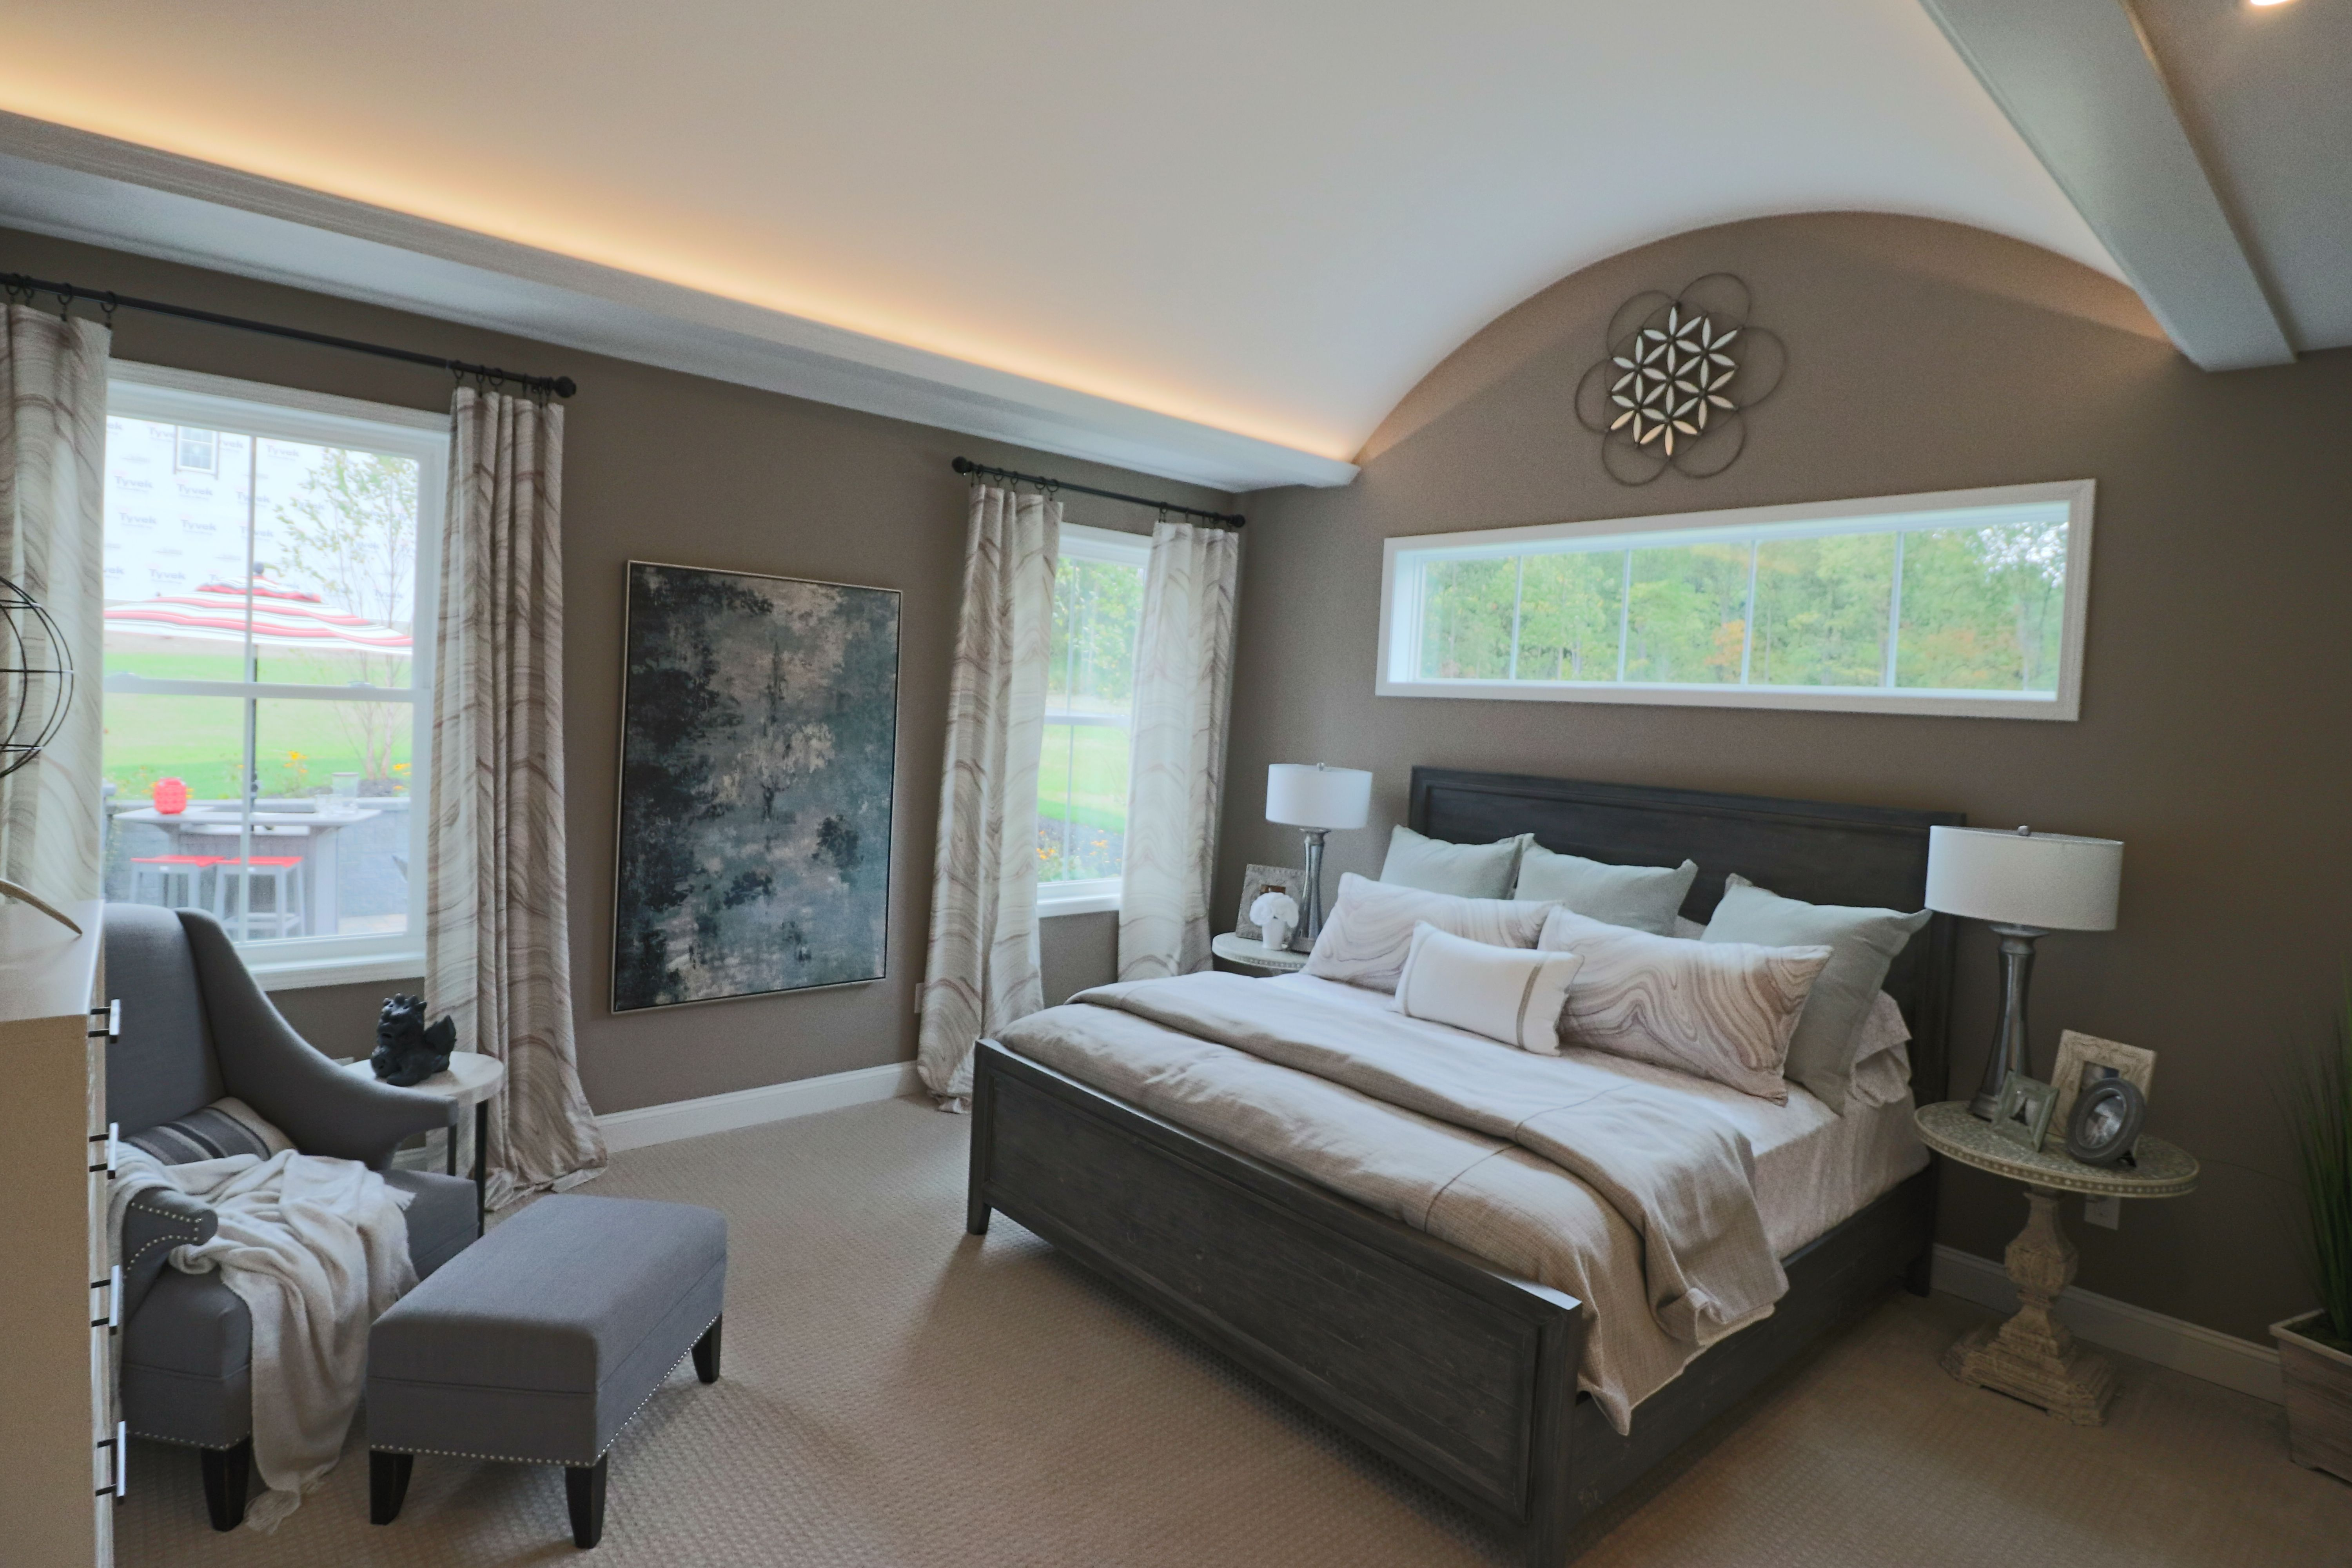 Bedroom featured in the Fallgate By Belmonte Builders in Albany-Saratoga, NY